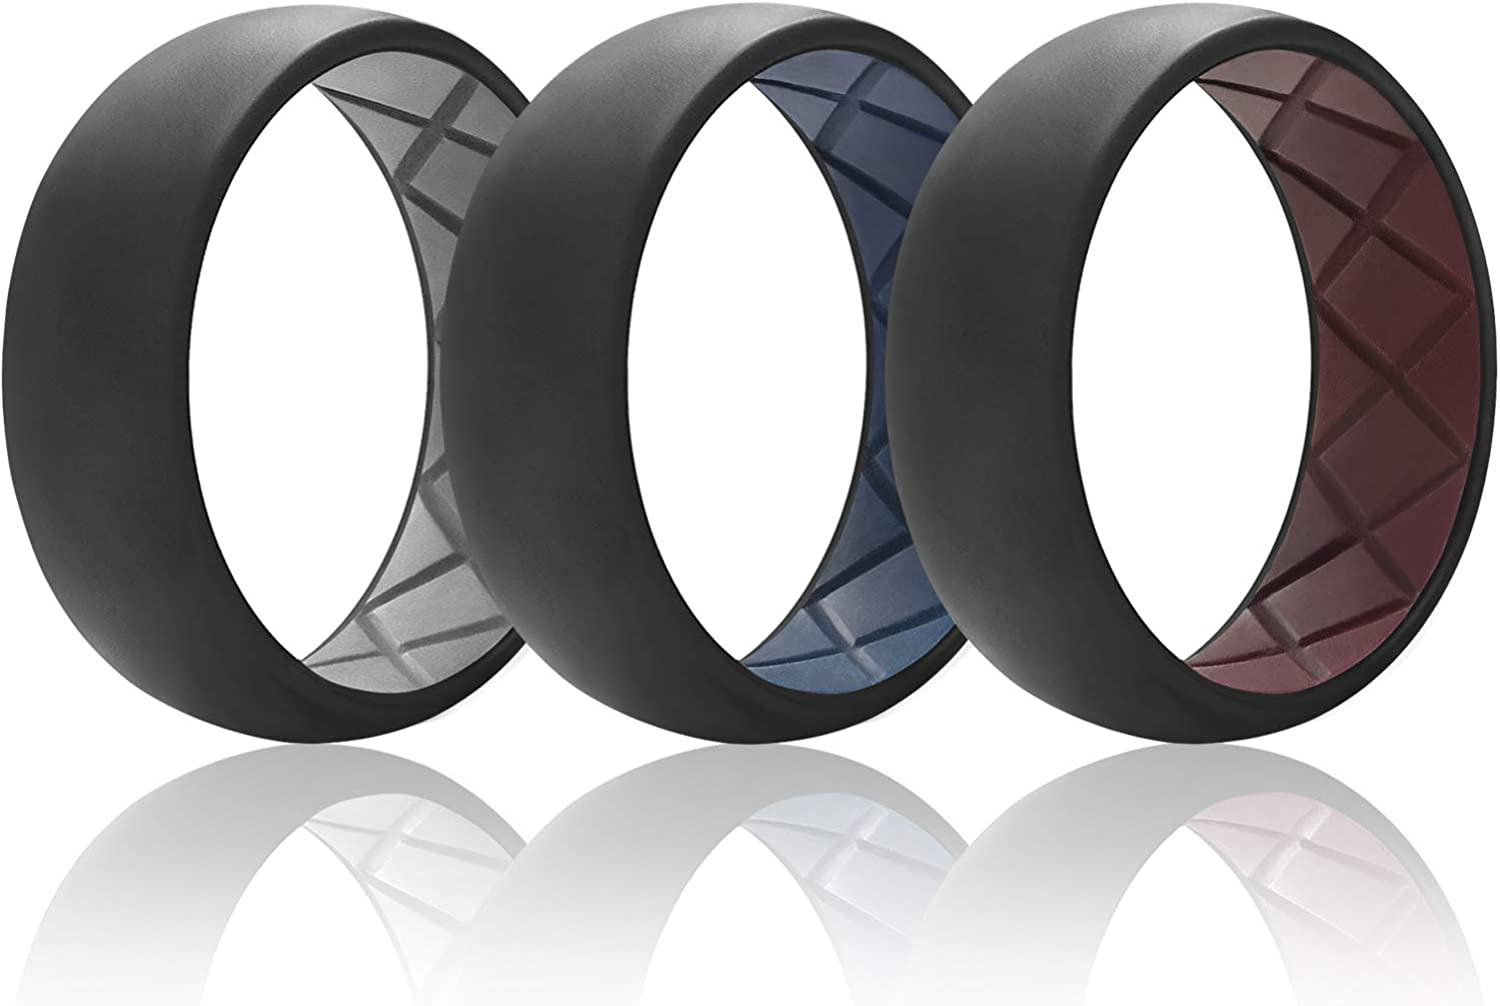 Egnaro Inner Arc Ergonomic Breathable Design with Dual Color,Silicone Wedding Ring for Men,Breathable Mens Rubber Wedding Bands for Athletes Fitness Workout